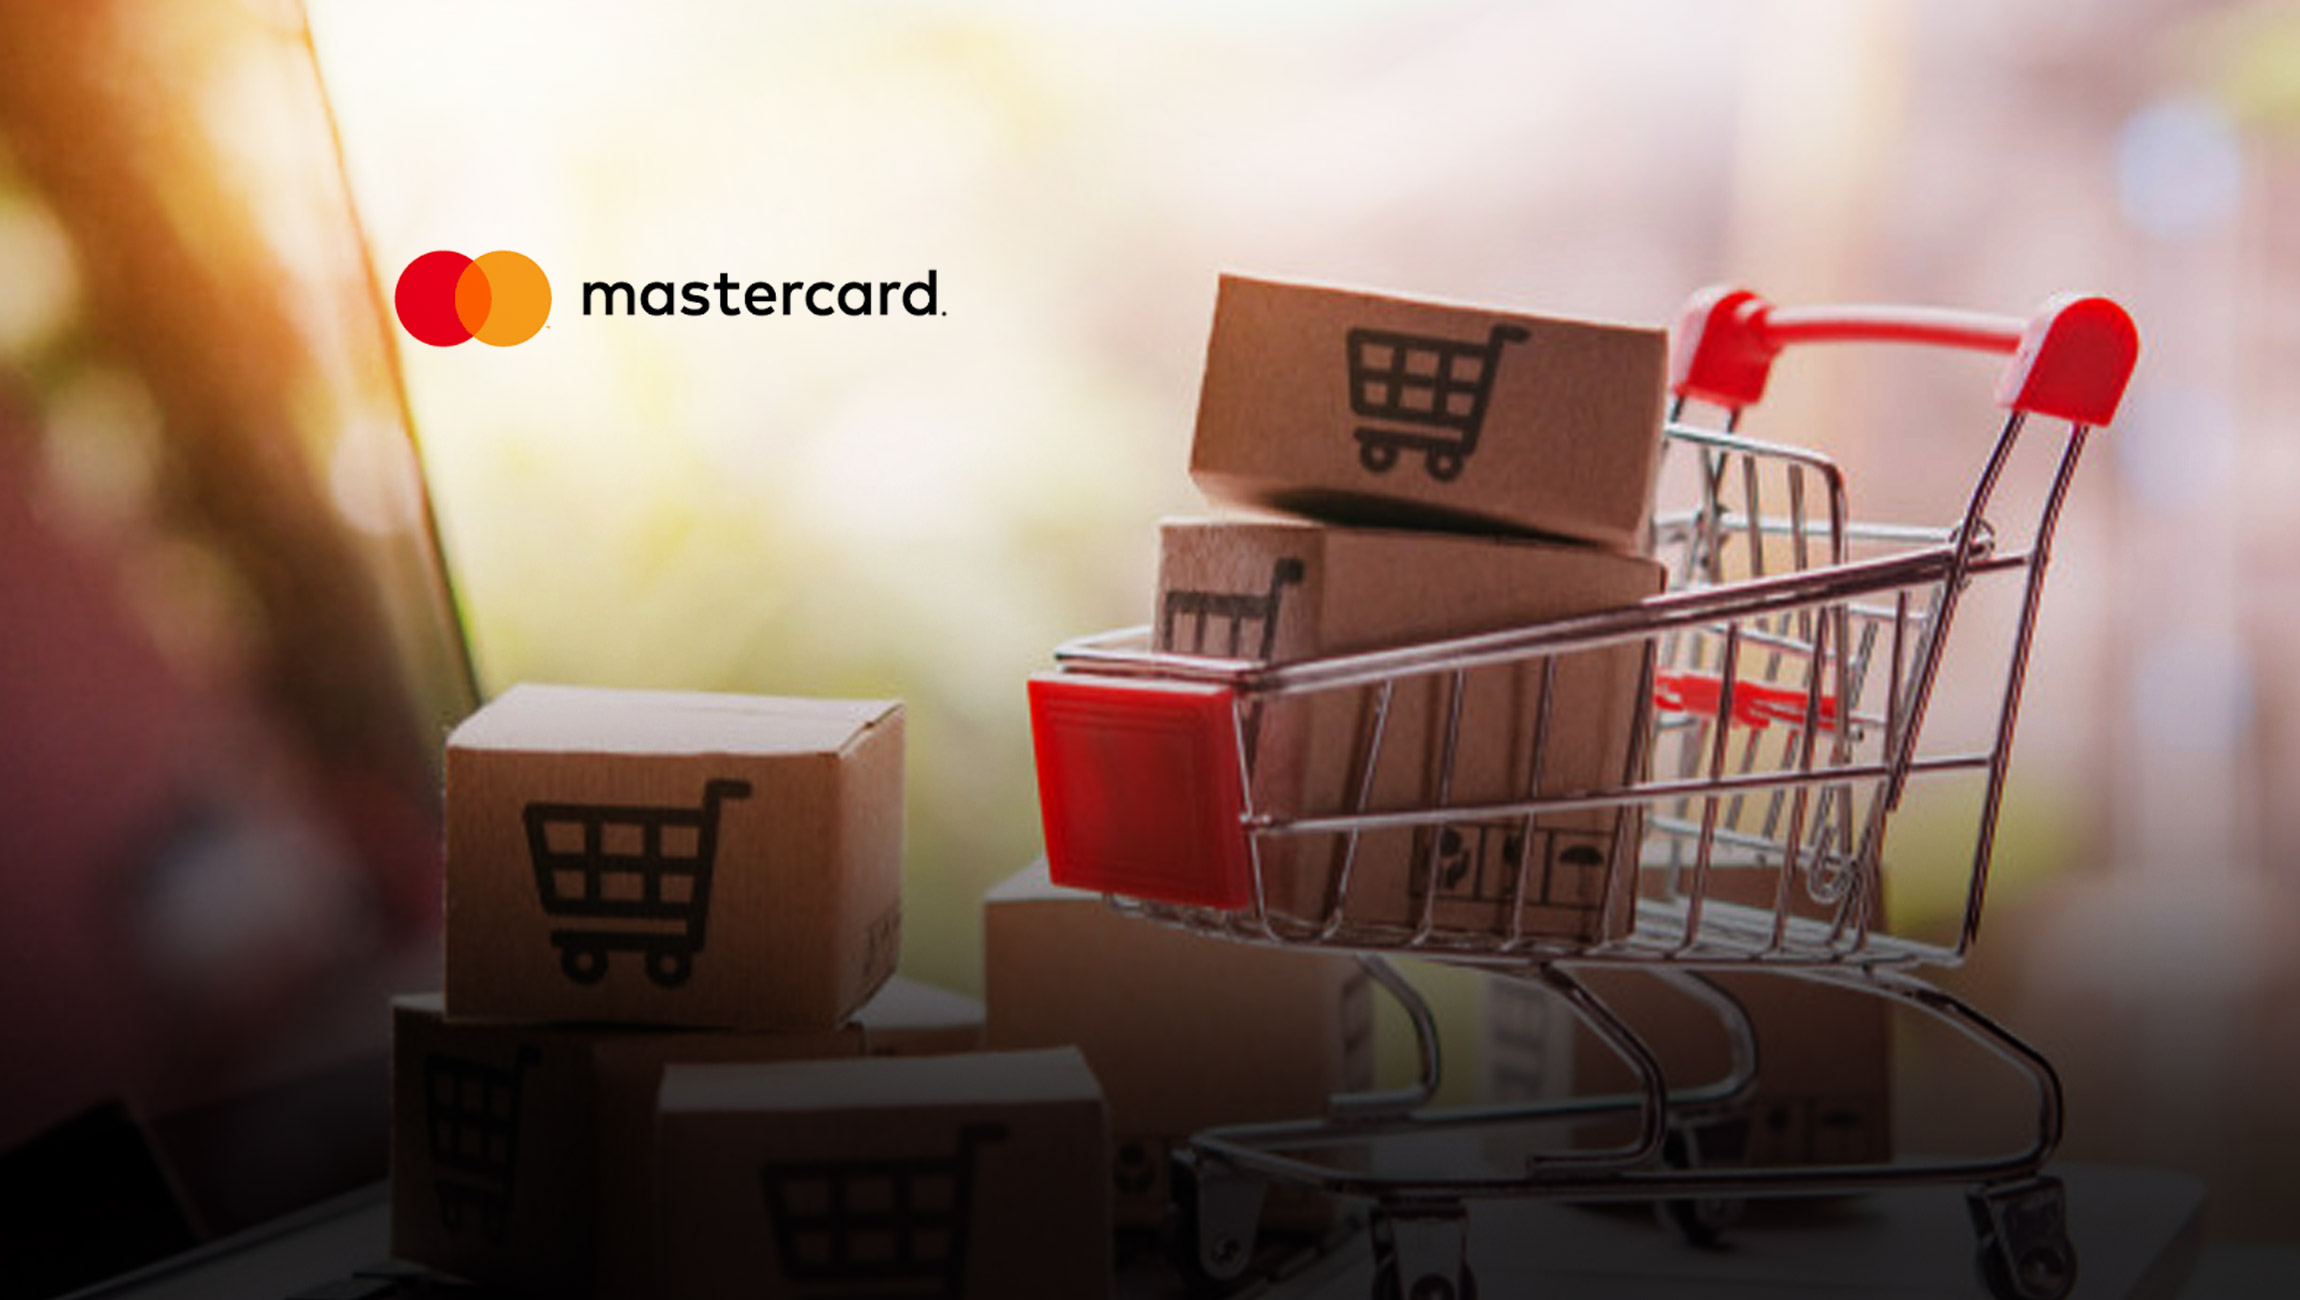 Mastercard SpendingPulse: Child Tax Credit Helps Lift U.S. Retail Sales Growth to 10.9%* in July